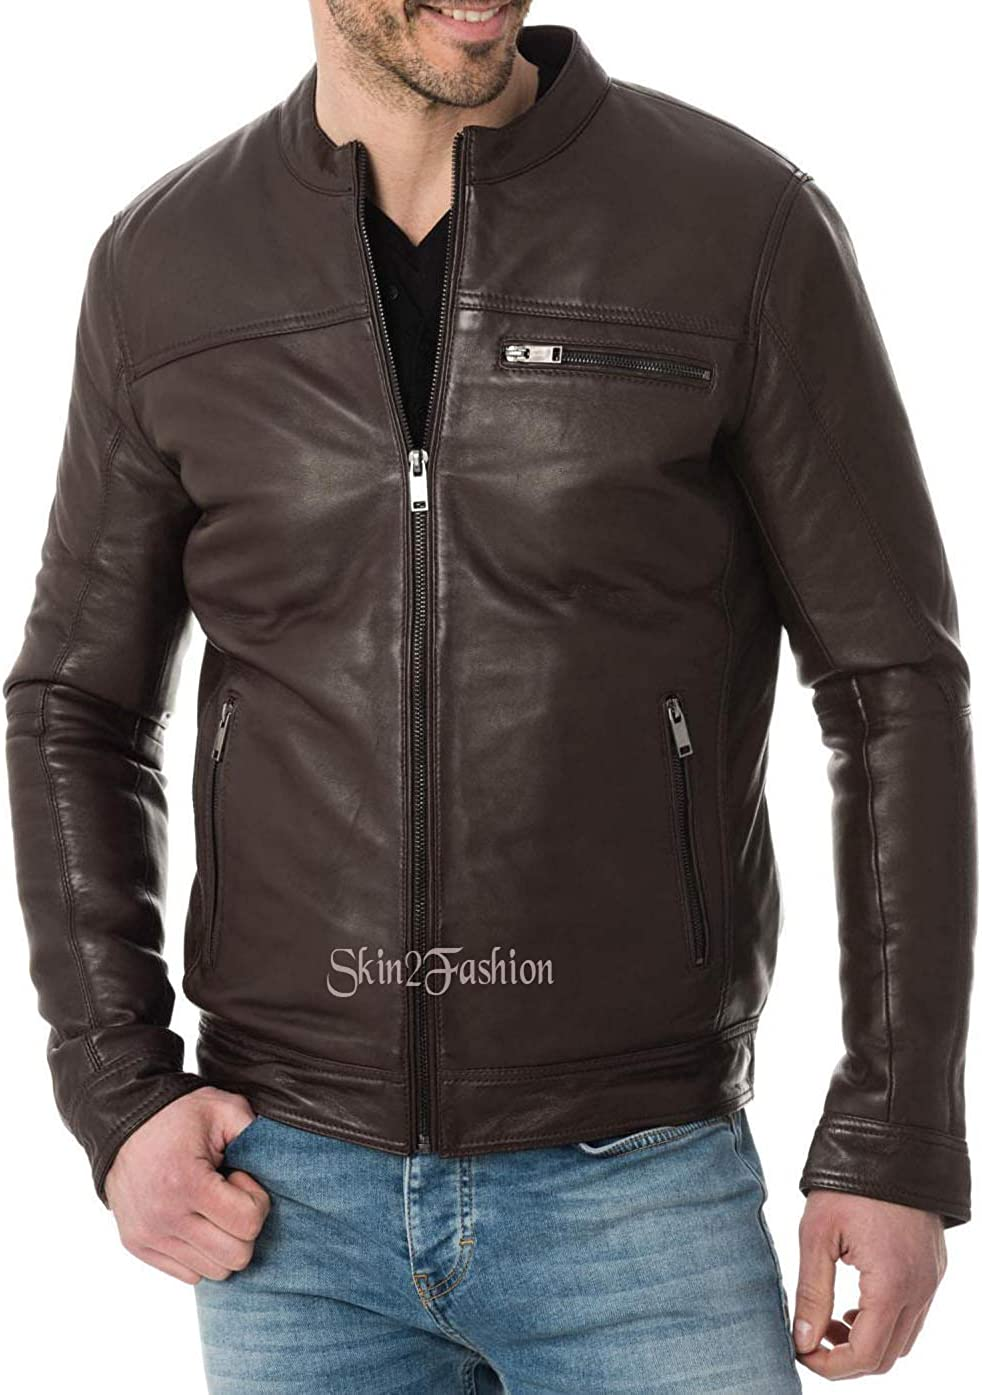 Skin2Fashion Mens Leather Jackets 496